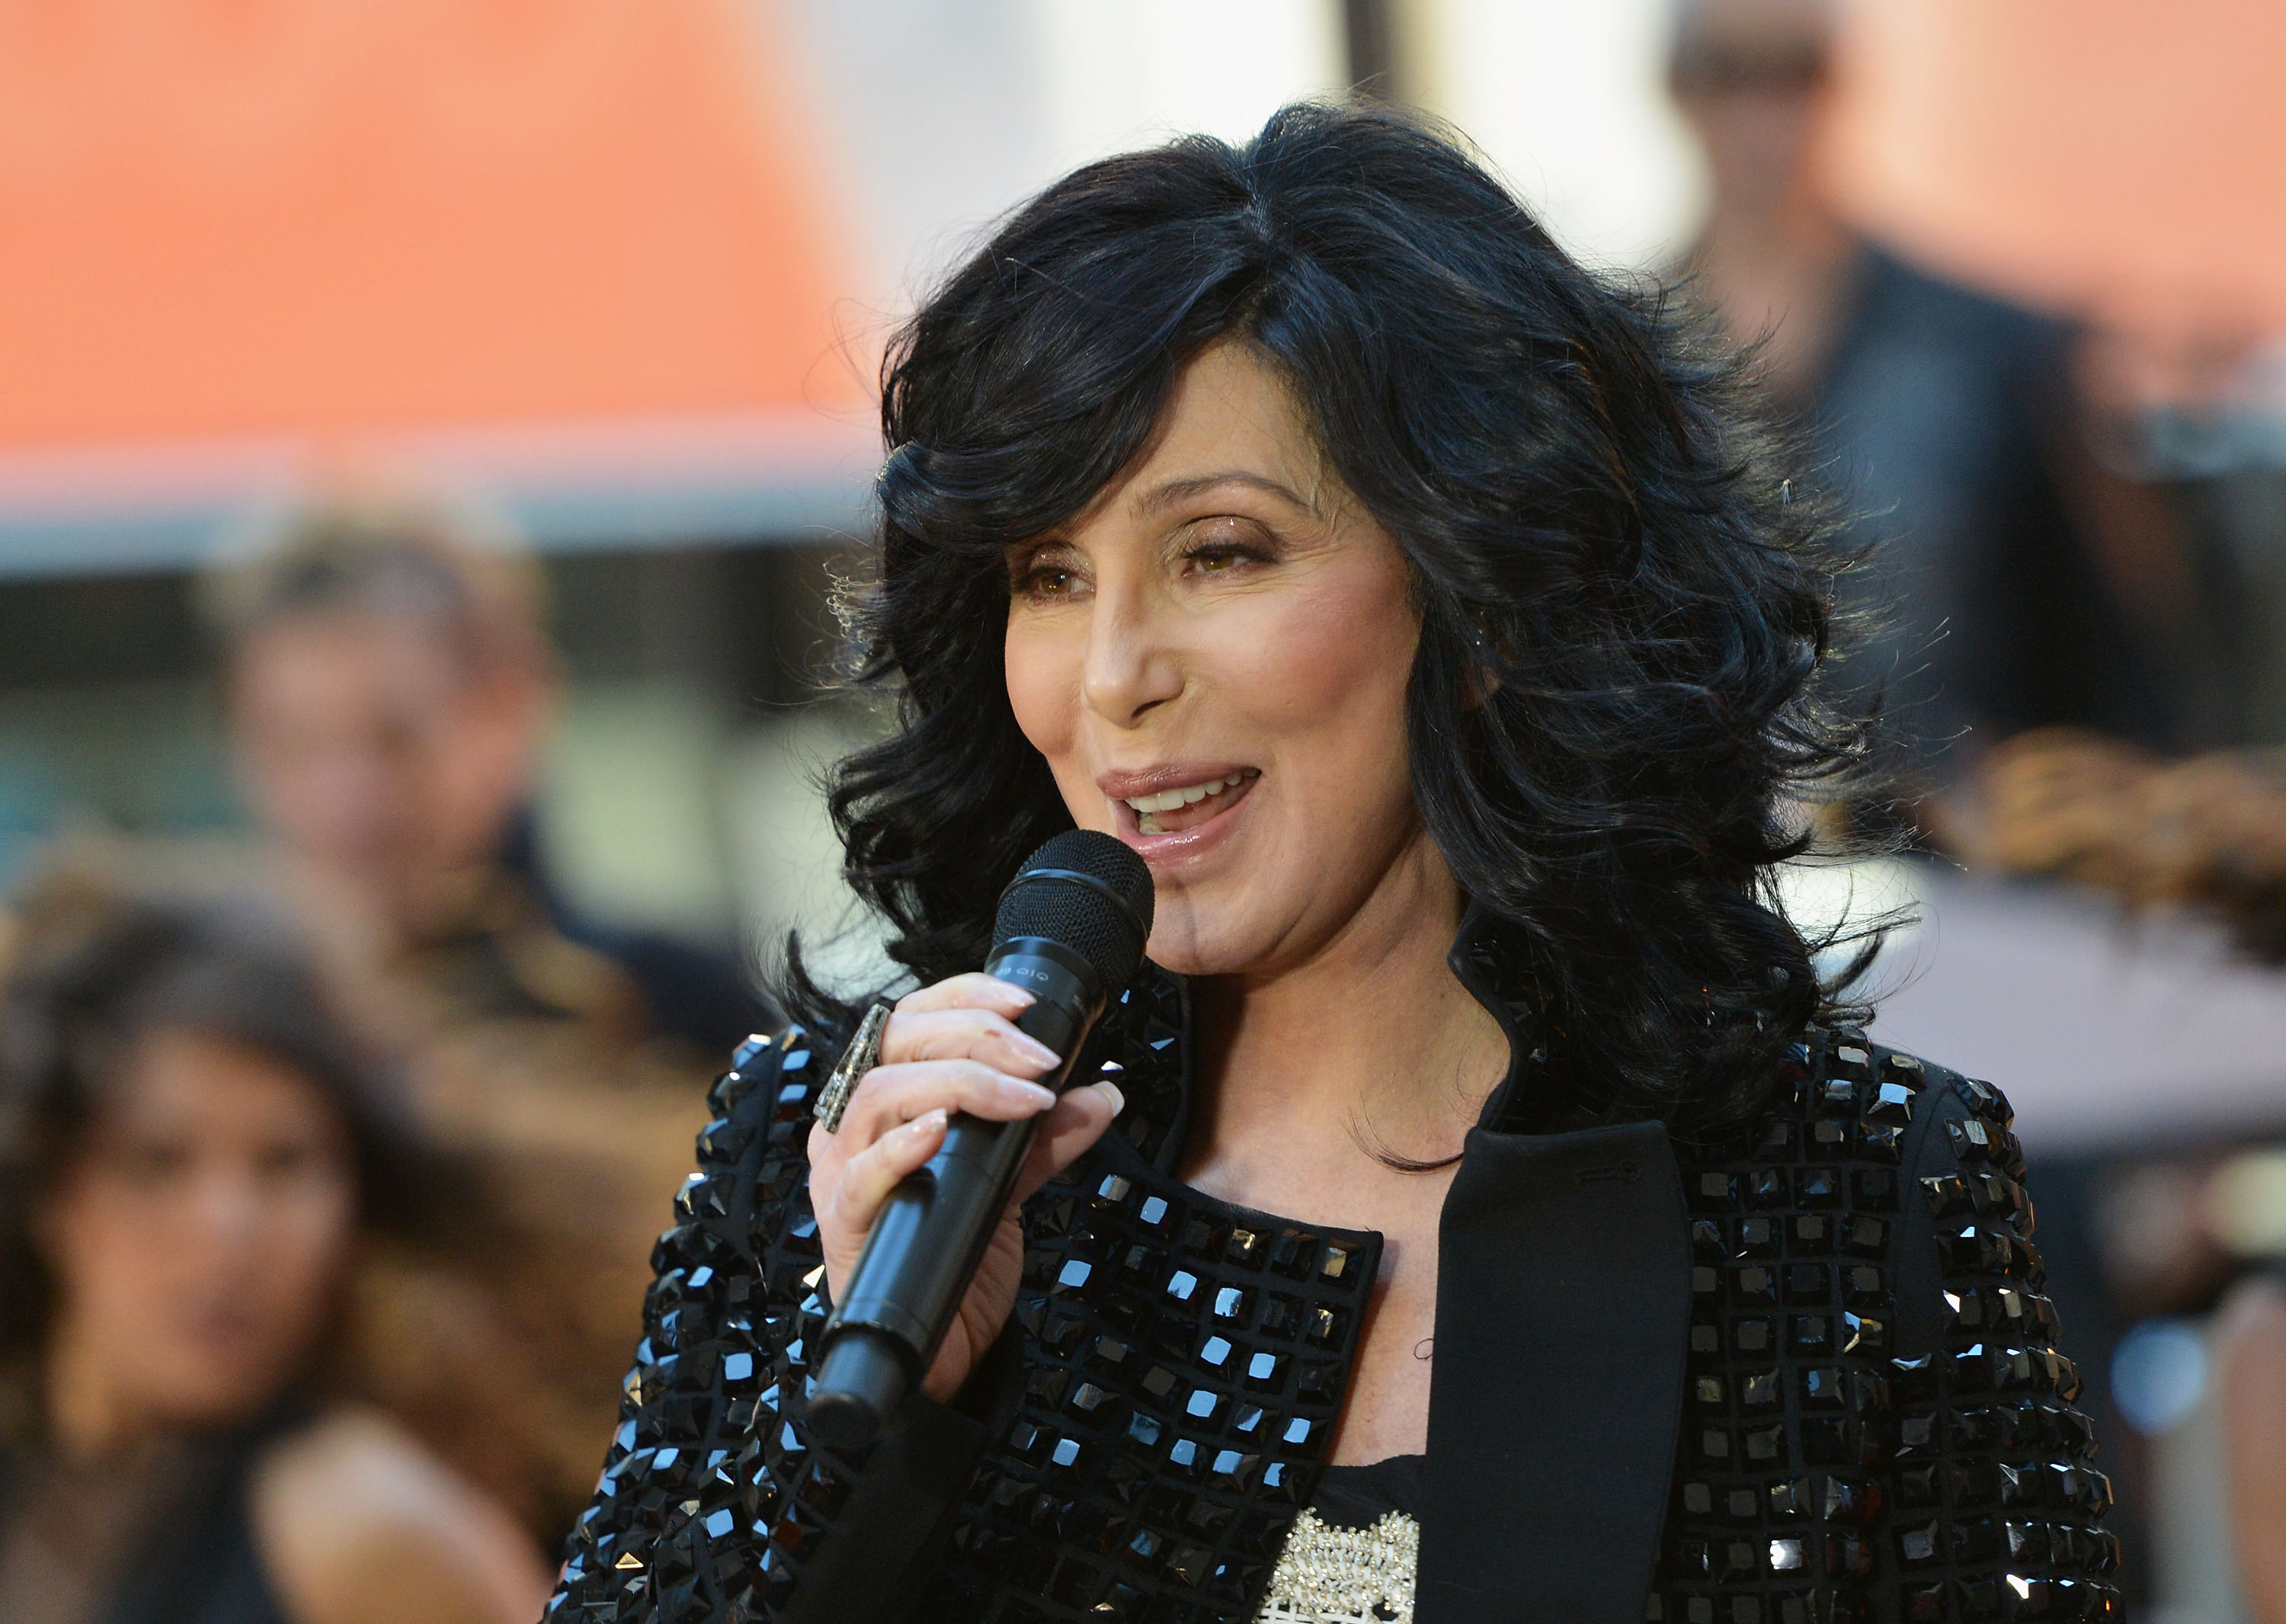 Singer Cher peforms on NBC's  Today  at NBC's TODAY Show in New York City on Sept. 23, 2013.